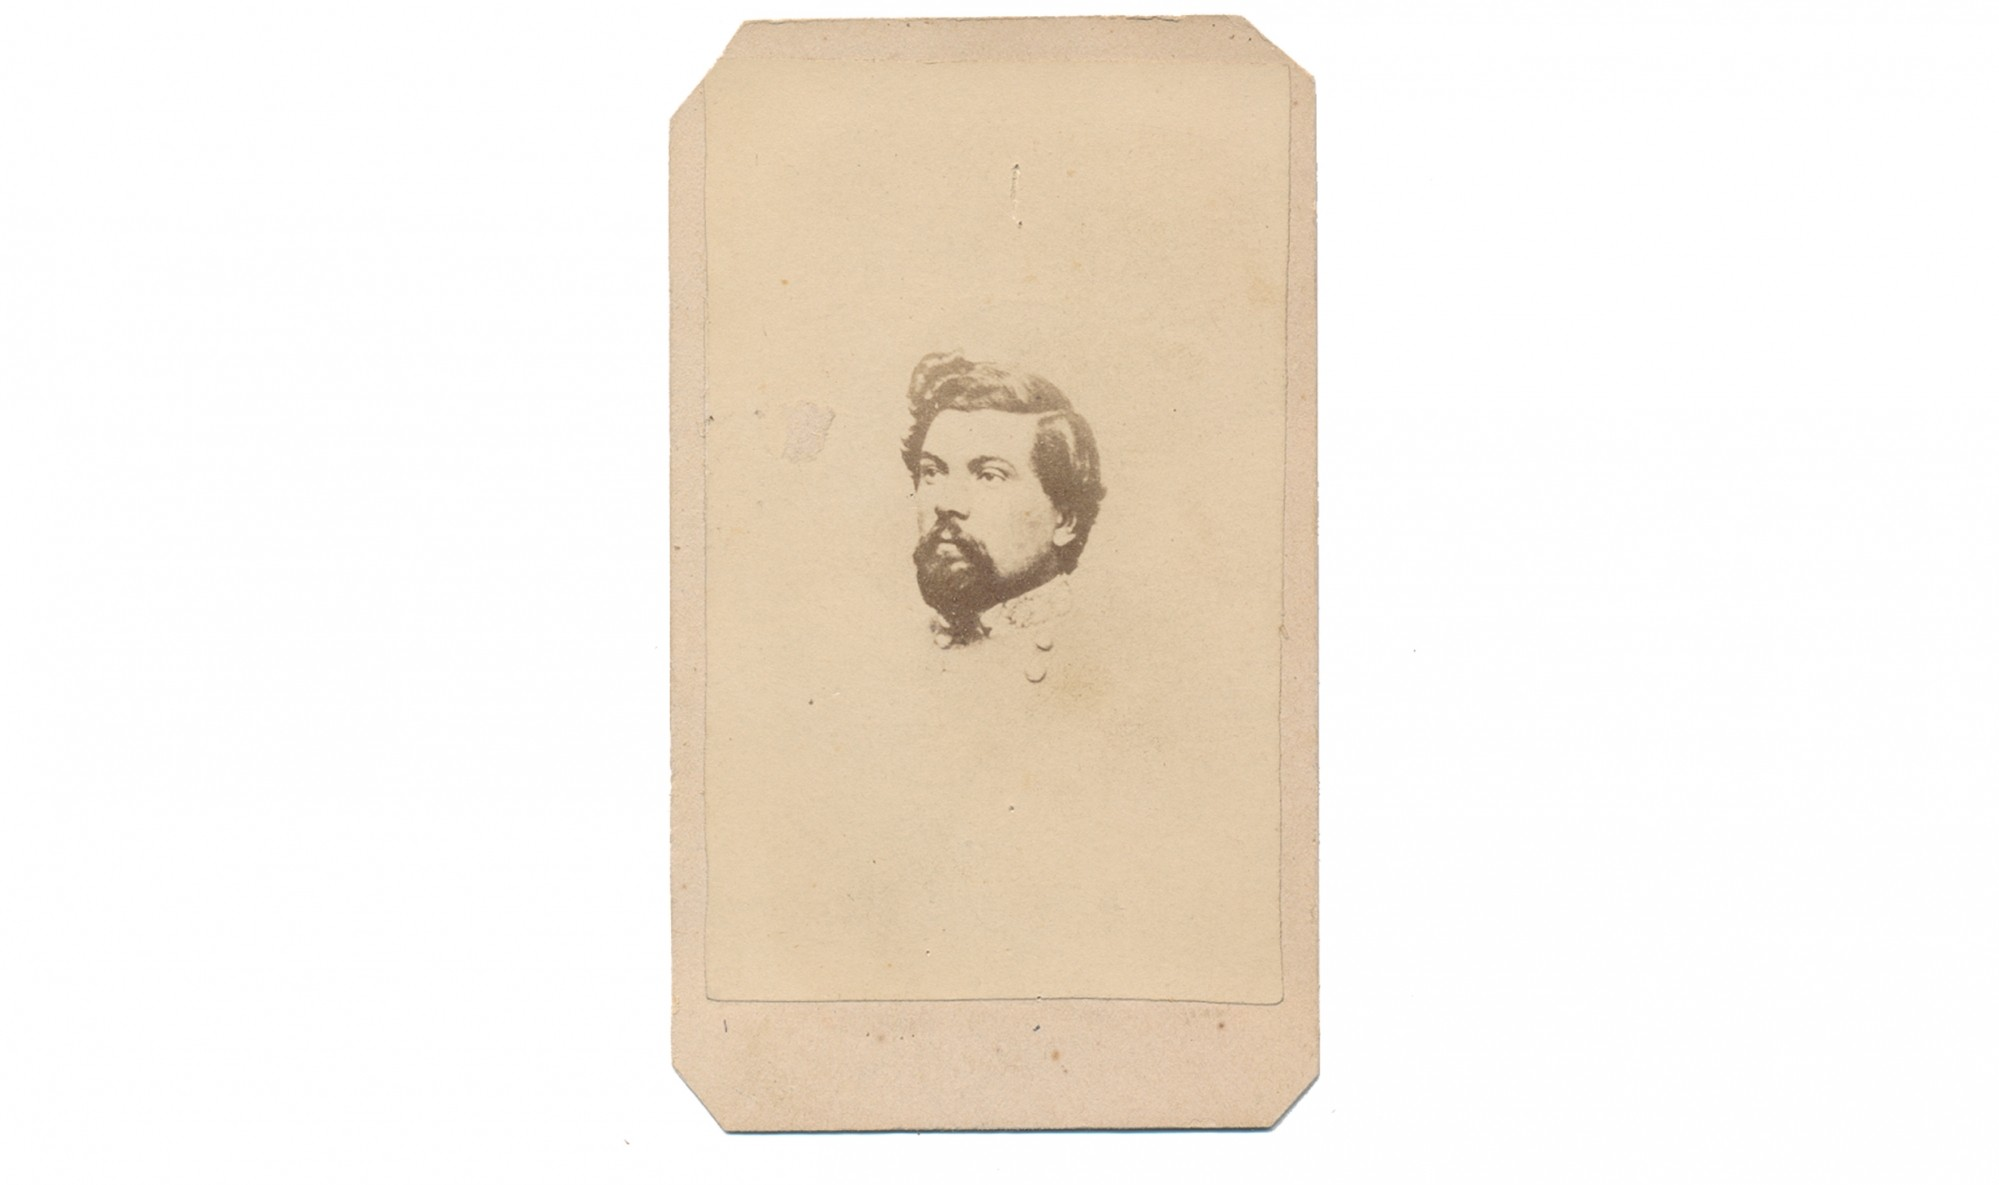 CDV OF CS MAJOR GENERAL THOMAS LAFAYETTE ROSSER